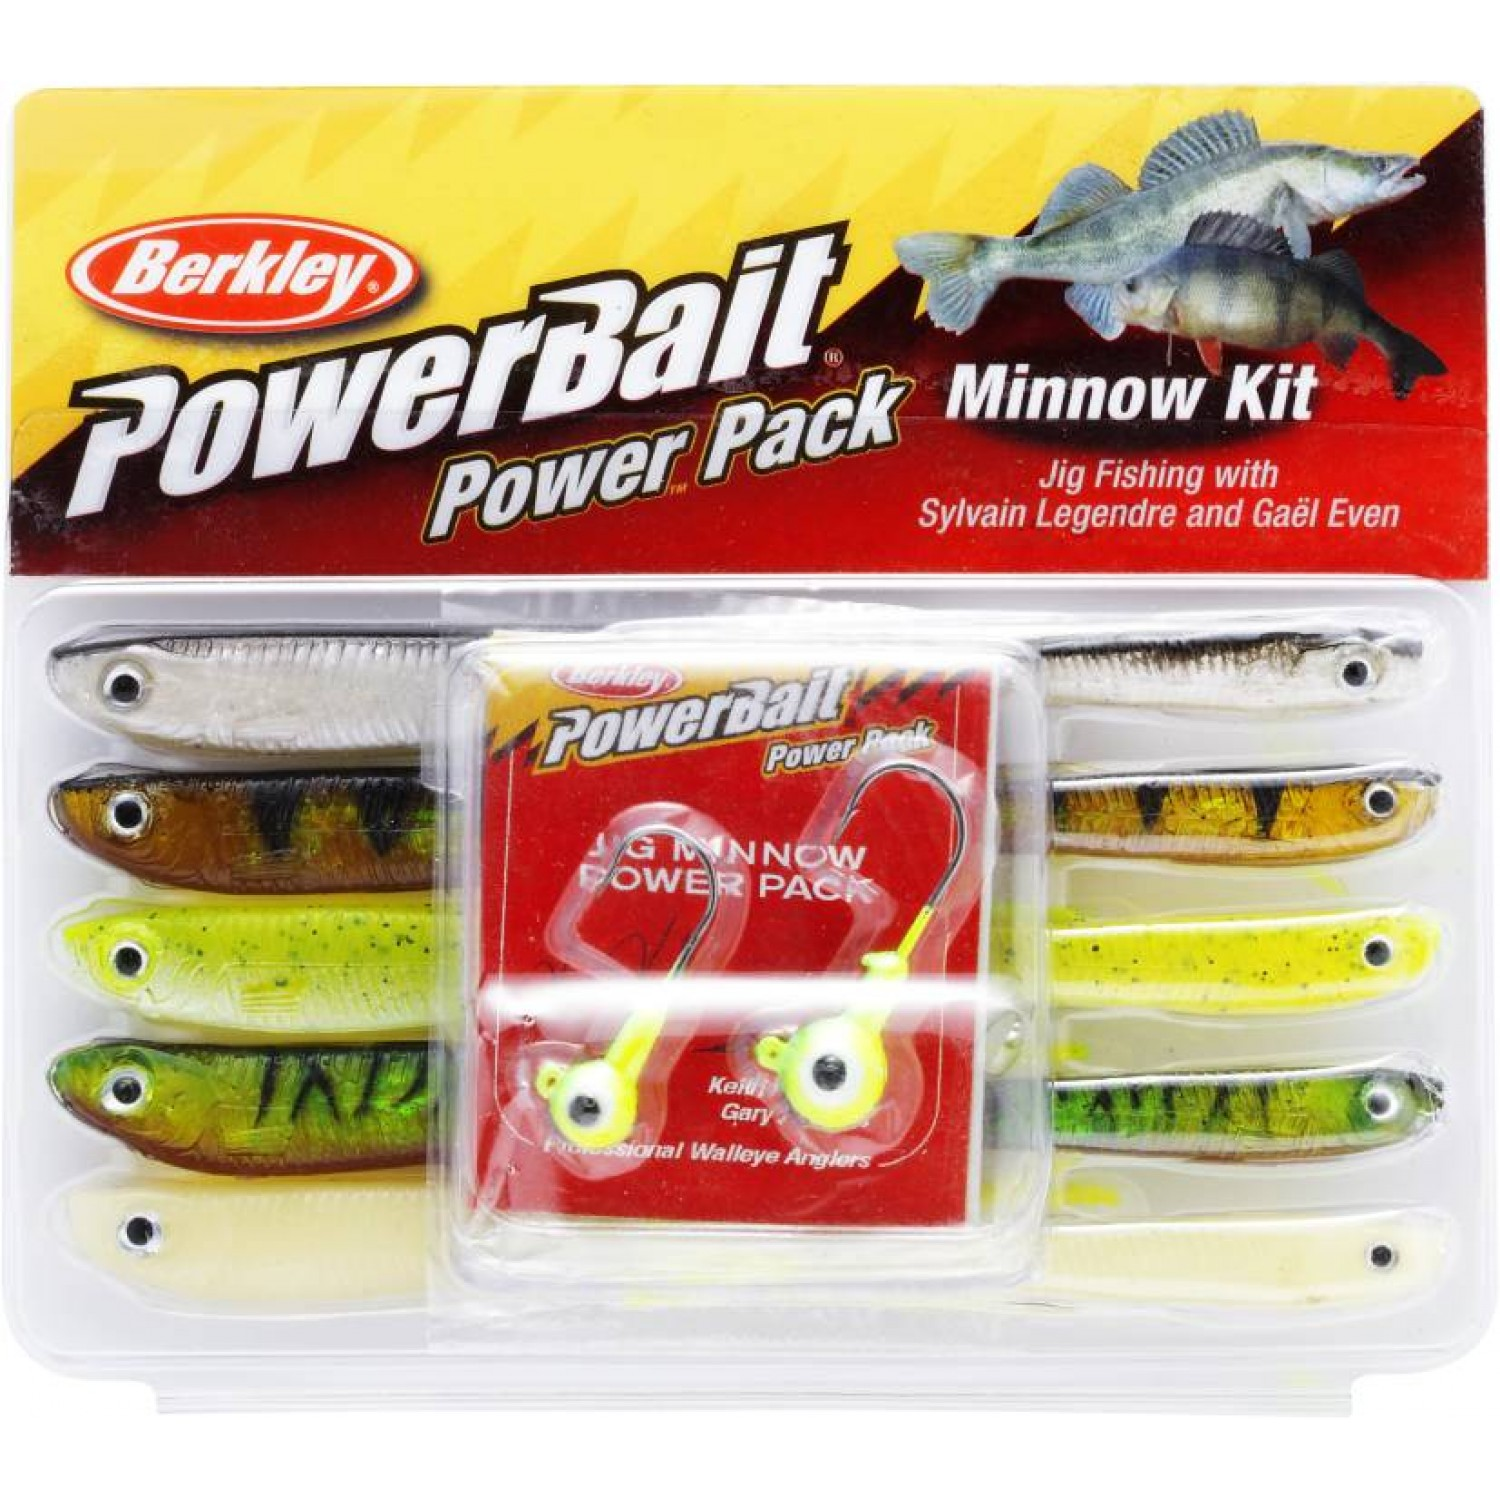 Berkley Powerbait Minnow Pro